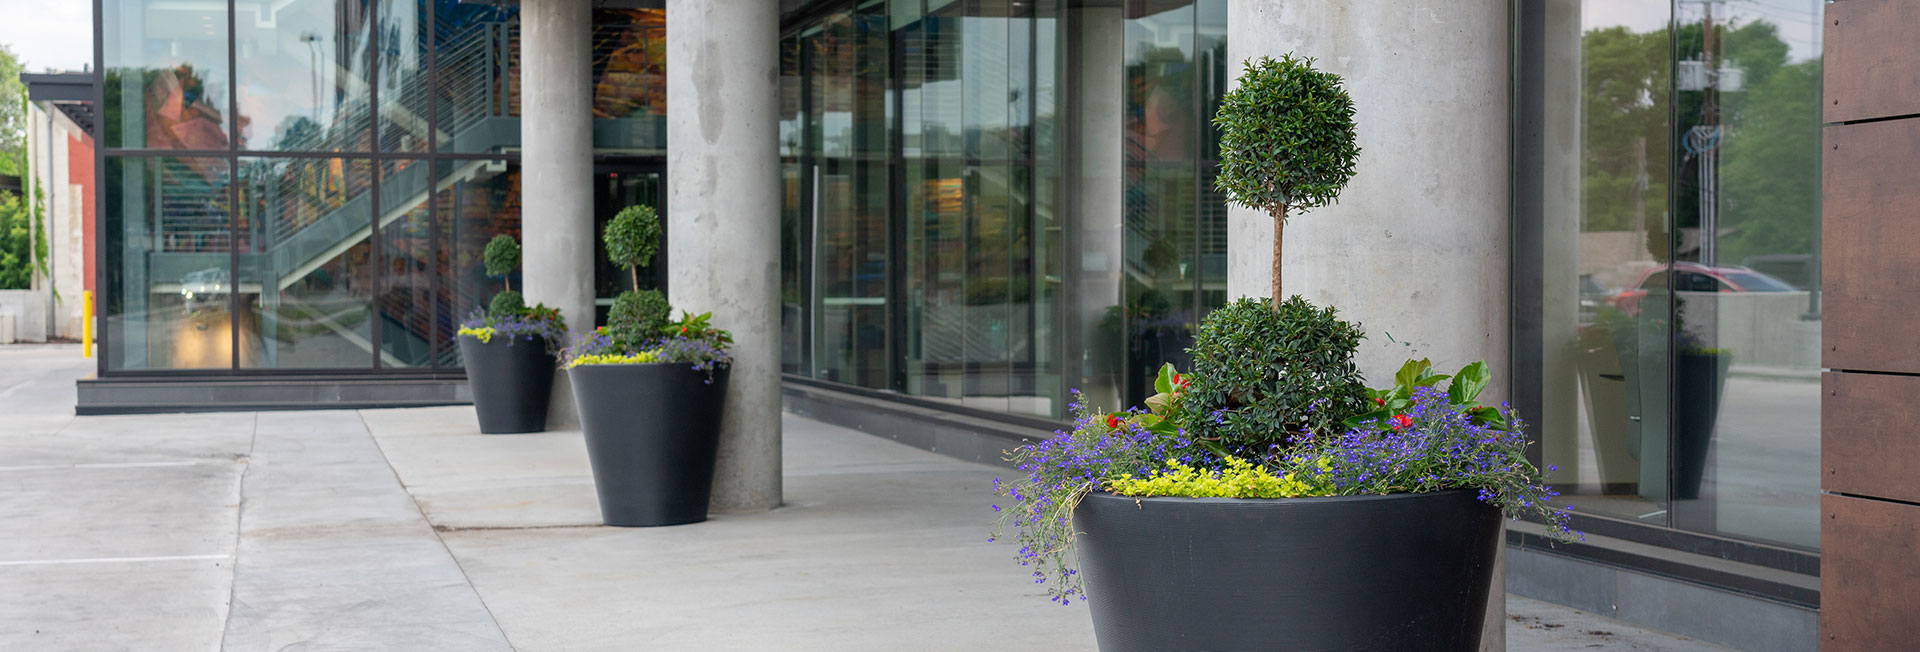 contact-north-metro-company-landscaping.jpg